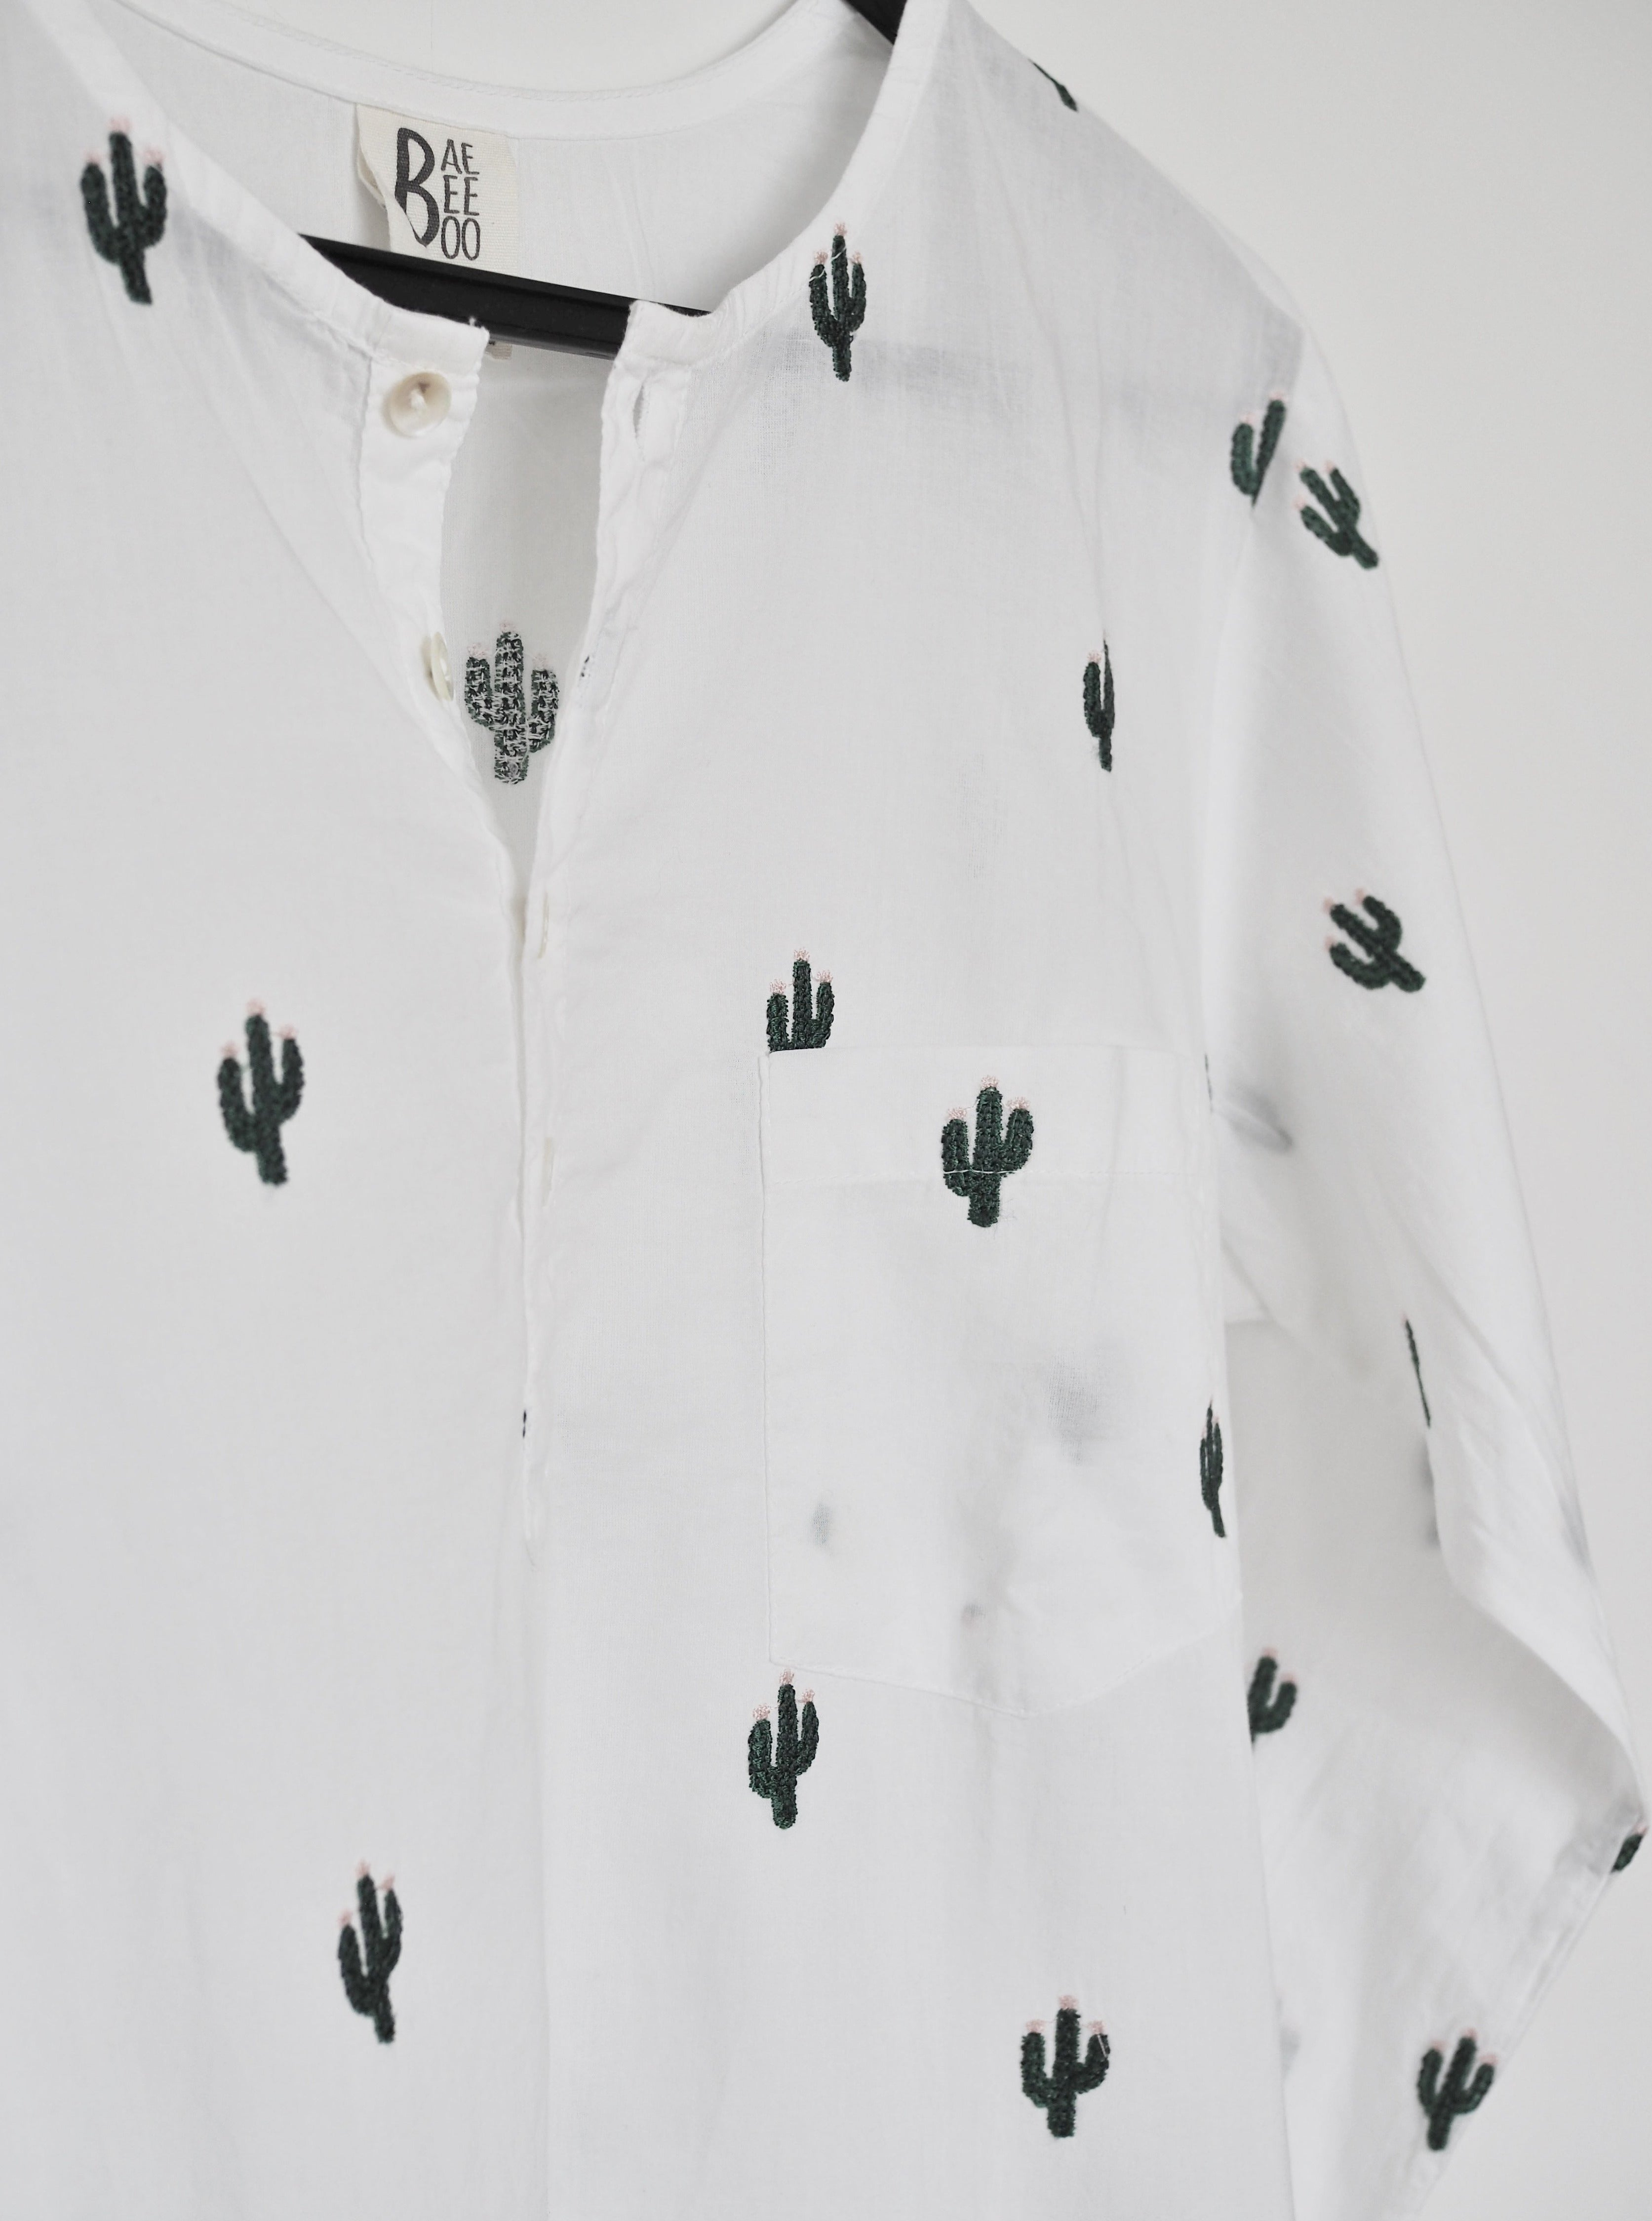 Twinning, mother and daughter, cactus, cactus shirts, cotton, made in india, 100% cotton, social conscious, baebeeboo, father and son